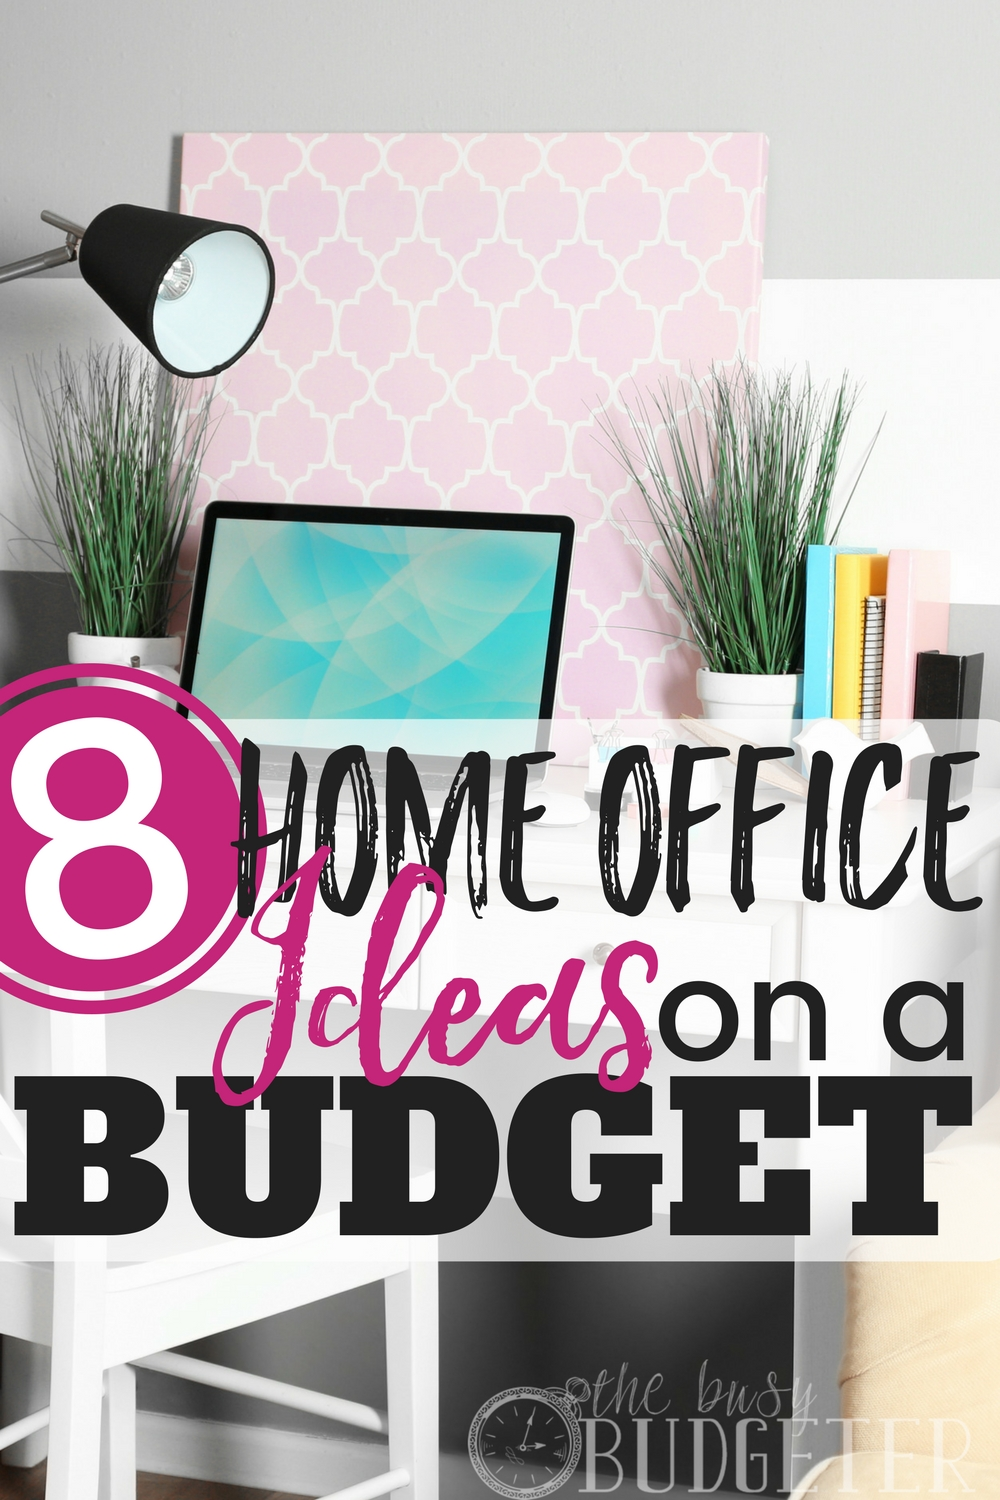 Home office ideas on a budget 8 easy office upgrades - Home decor on a budget ...